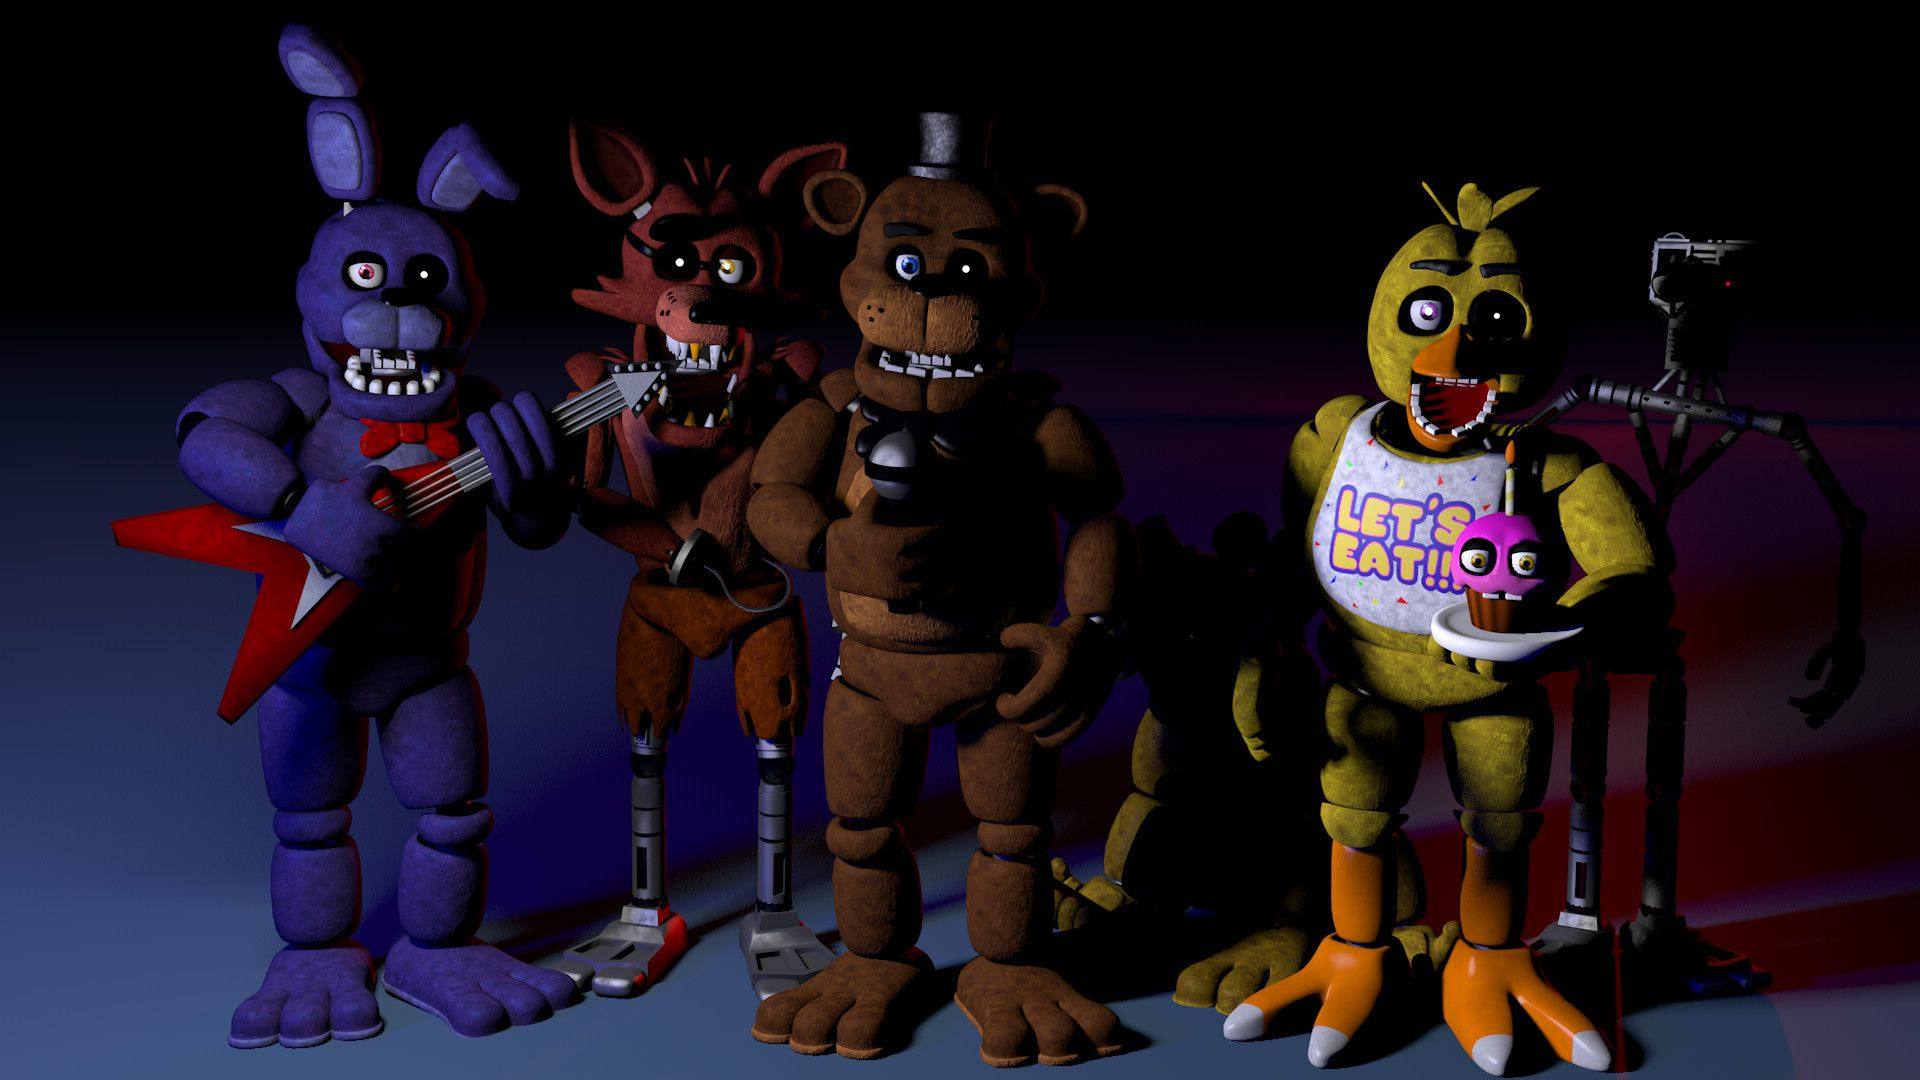 1920x1080 FNaF 1 Wallpaper by MrNobody1987 FNaF 1